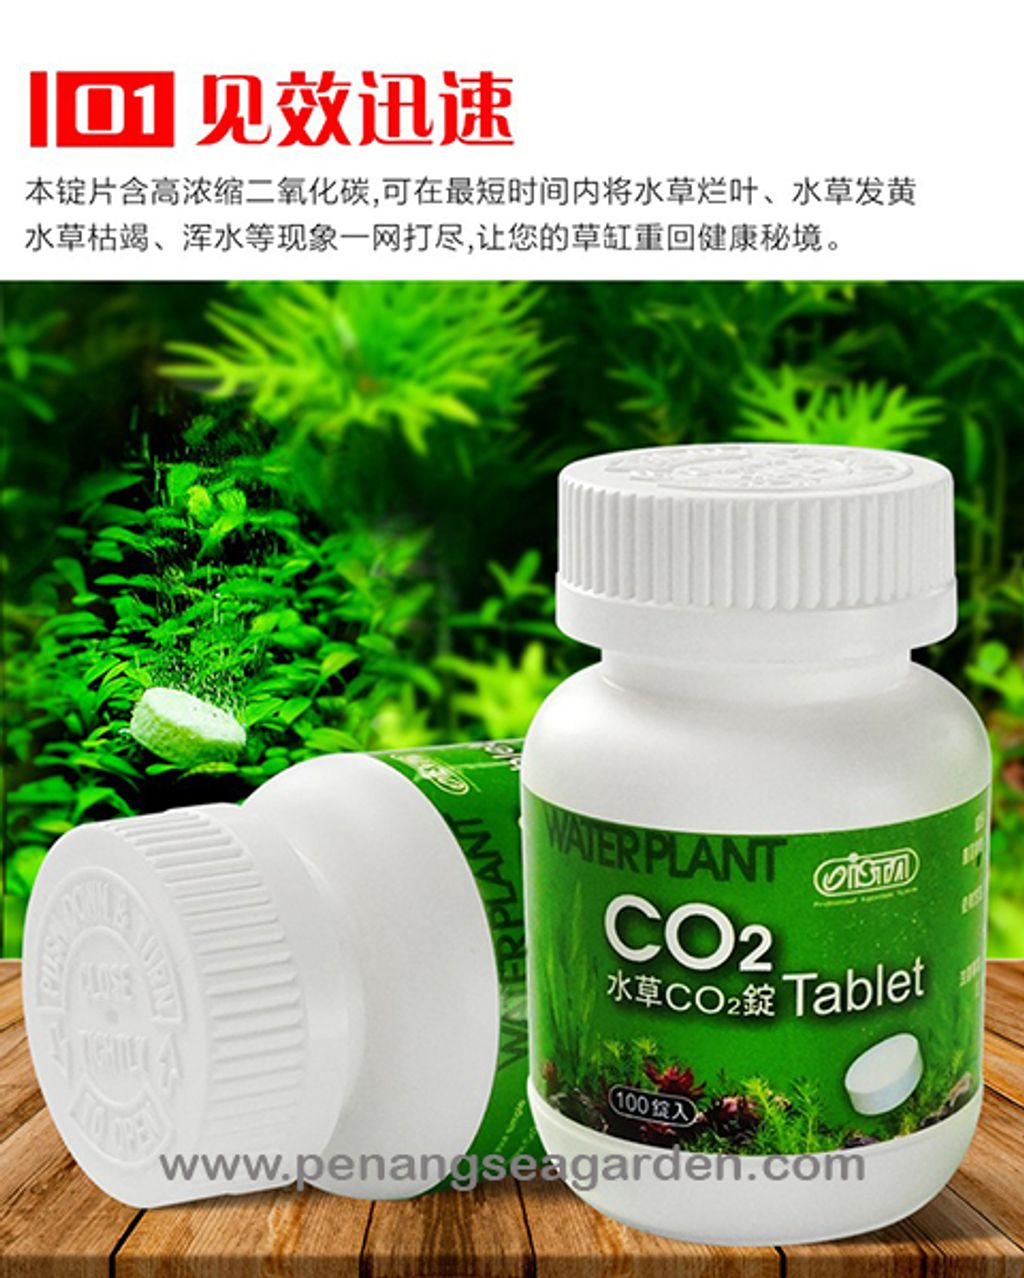 ISTA Water Plant CO2 水草 (100 Tablet) RM23-7.1w.jpg